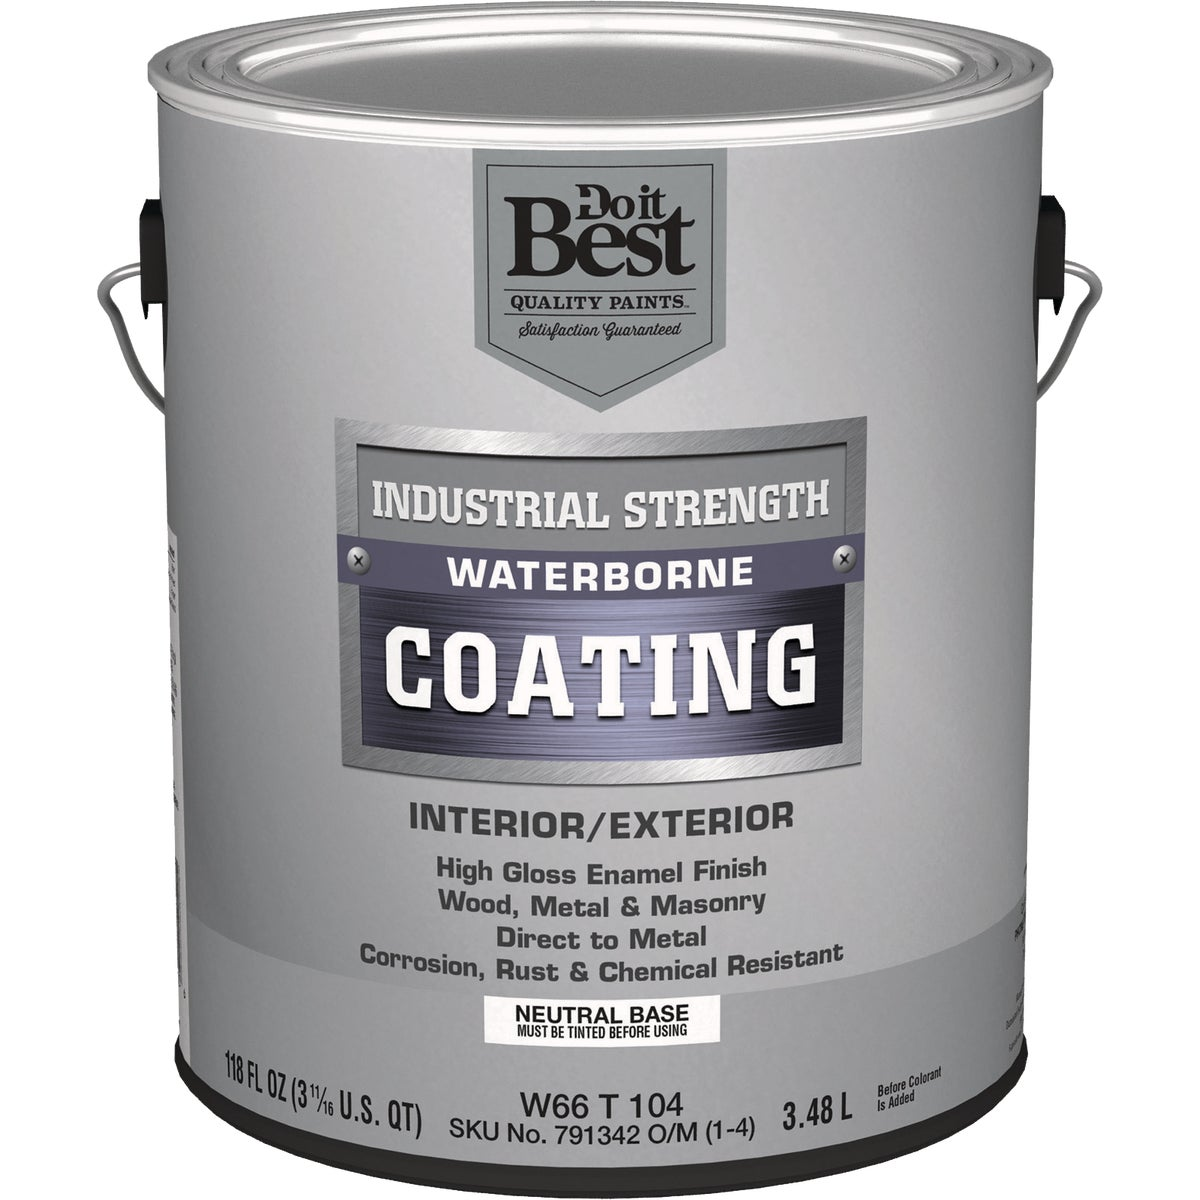 GLS NEUTRAL BS LTX PAINT - W66T00104-16 by Do it Best